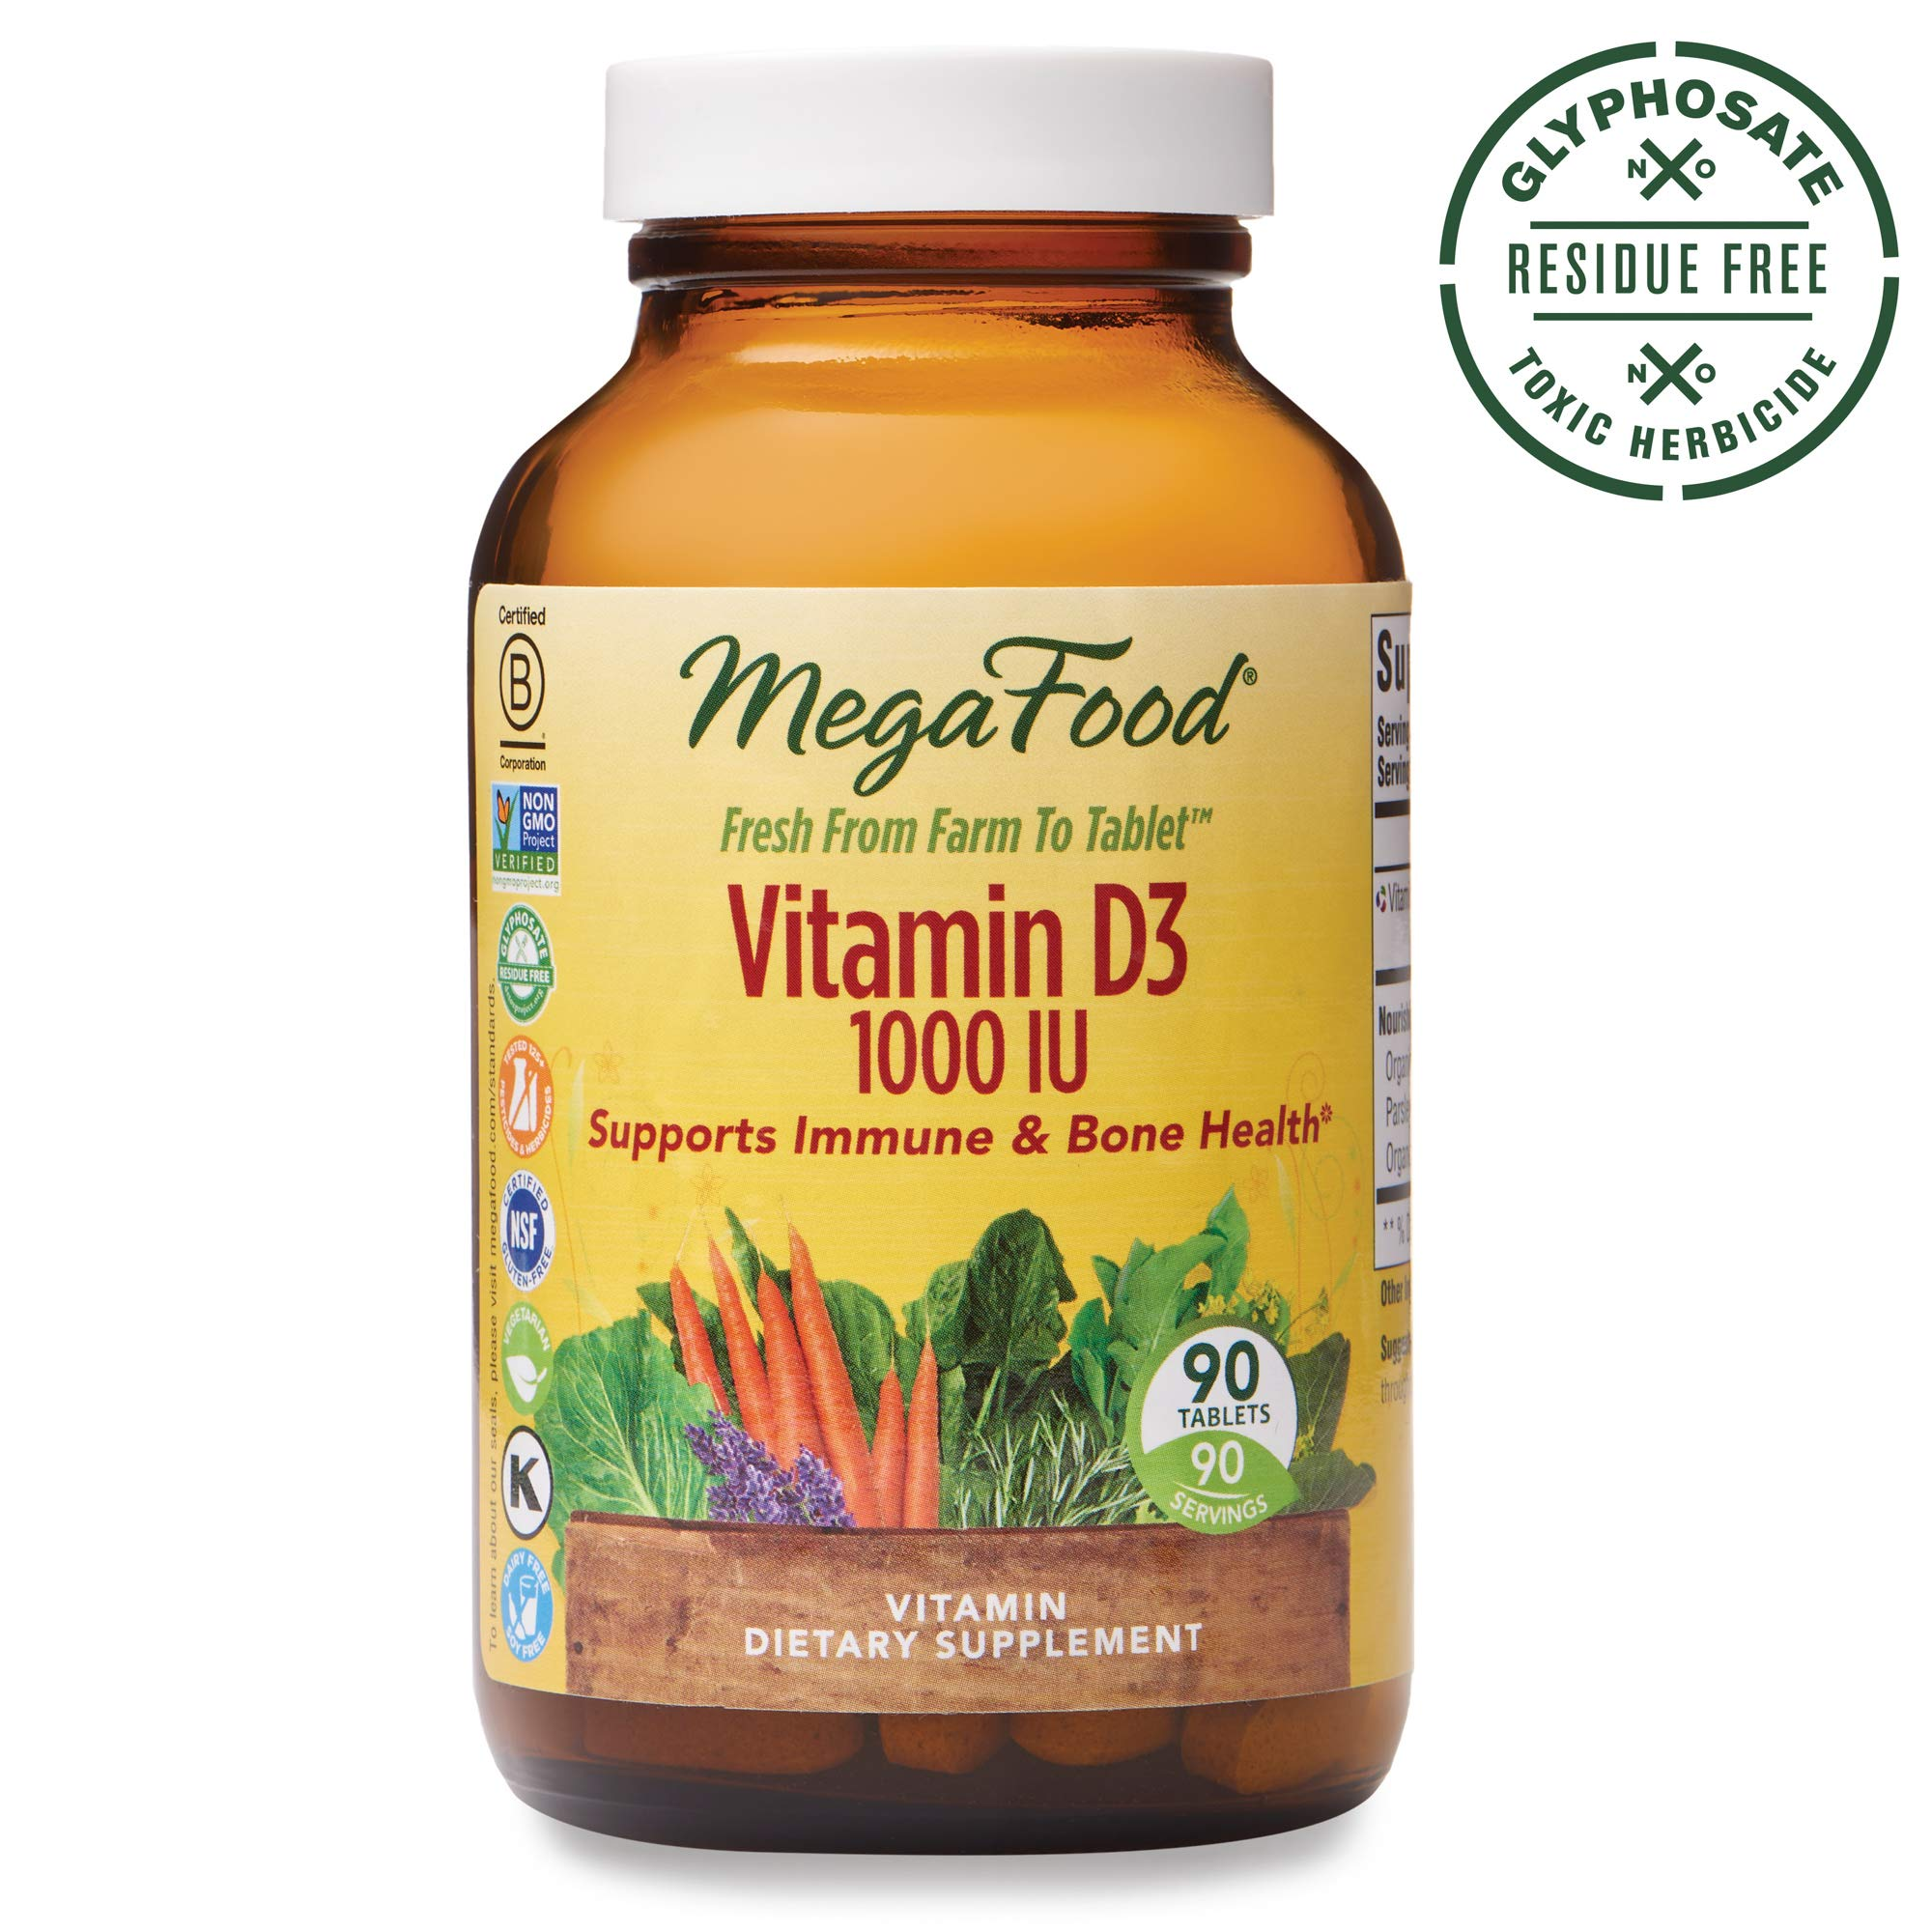 MegaFood, Vitamin D3 1000 IU, Immune and Bone Health Support, Vitamin and Dietary Supplement, Gluten Free, Vegetarian, 90 Tablets (90 Servings) (FFP)